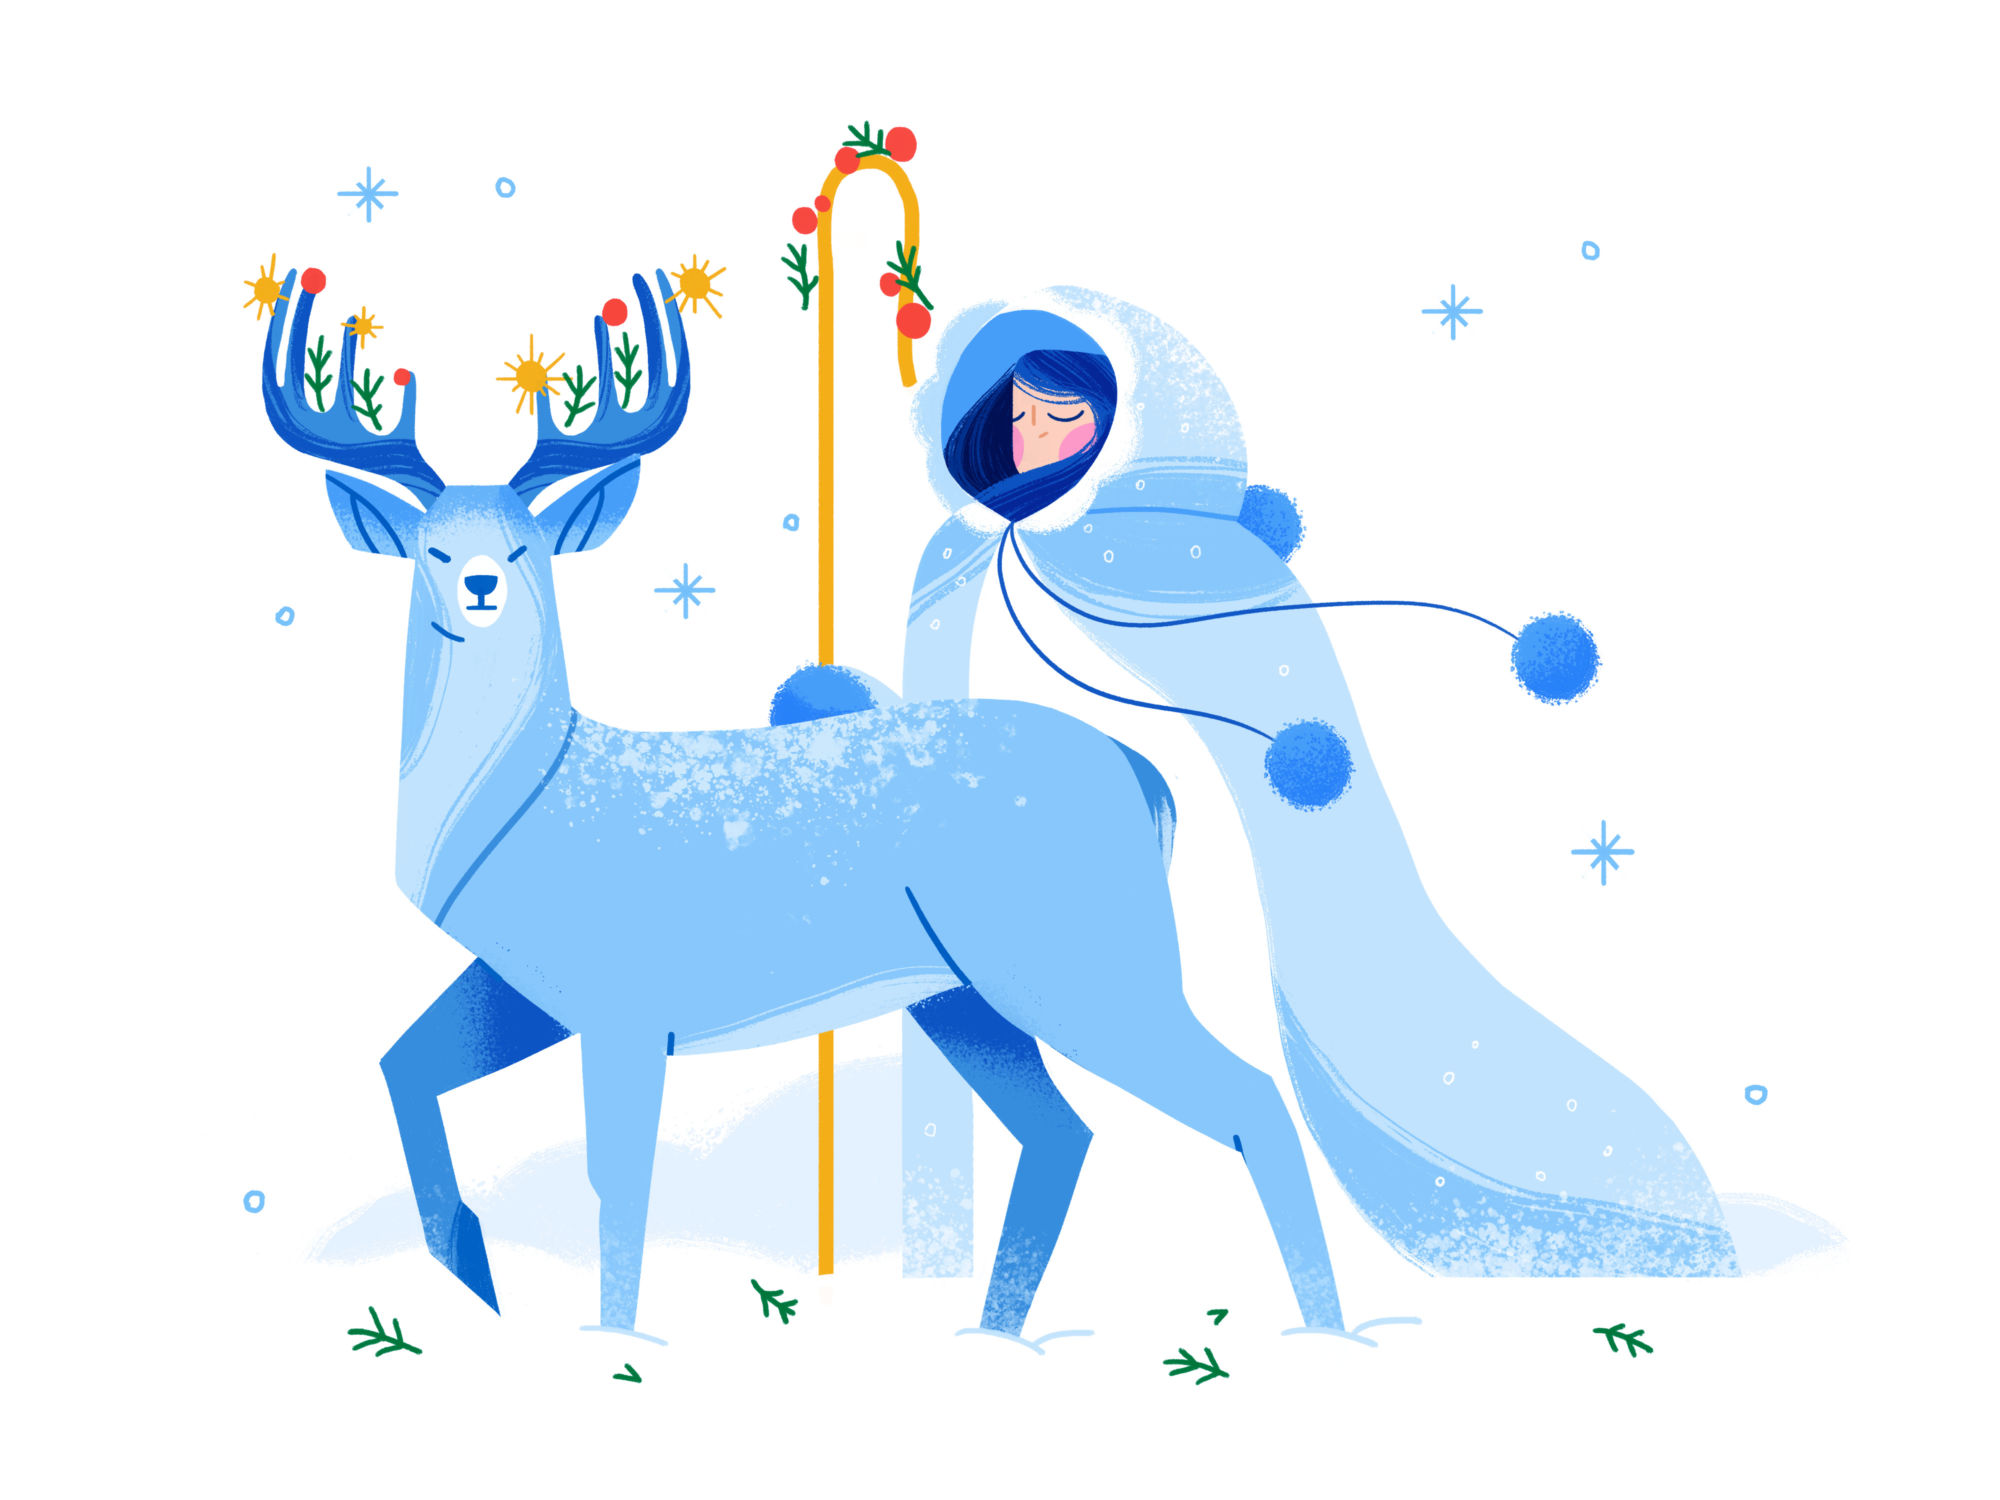 Winter Wonderland: New 40+ Illustrations of Christmas and Winter